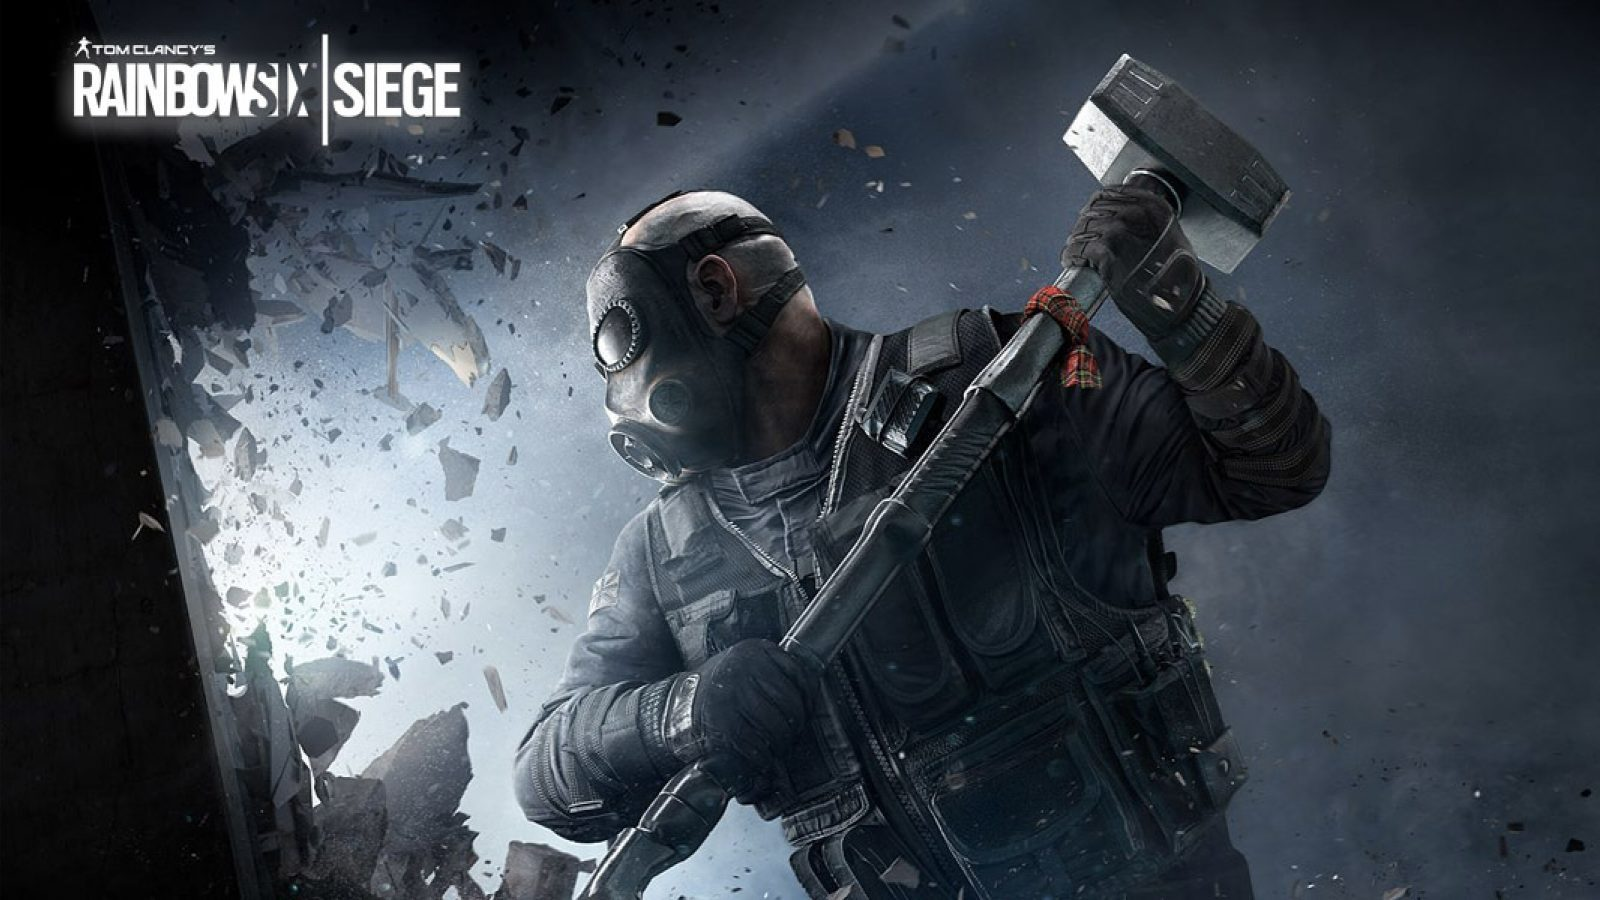 New Rainbow Six Siege Operator Gadgets Possibly Leaked